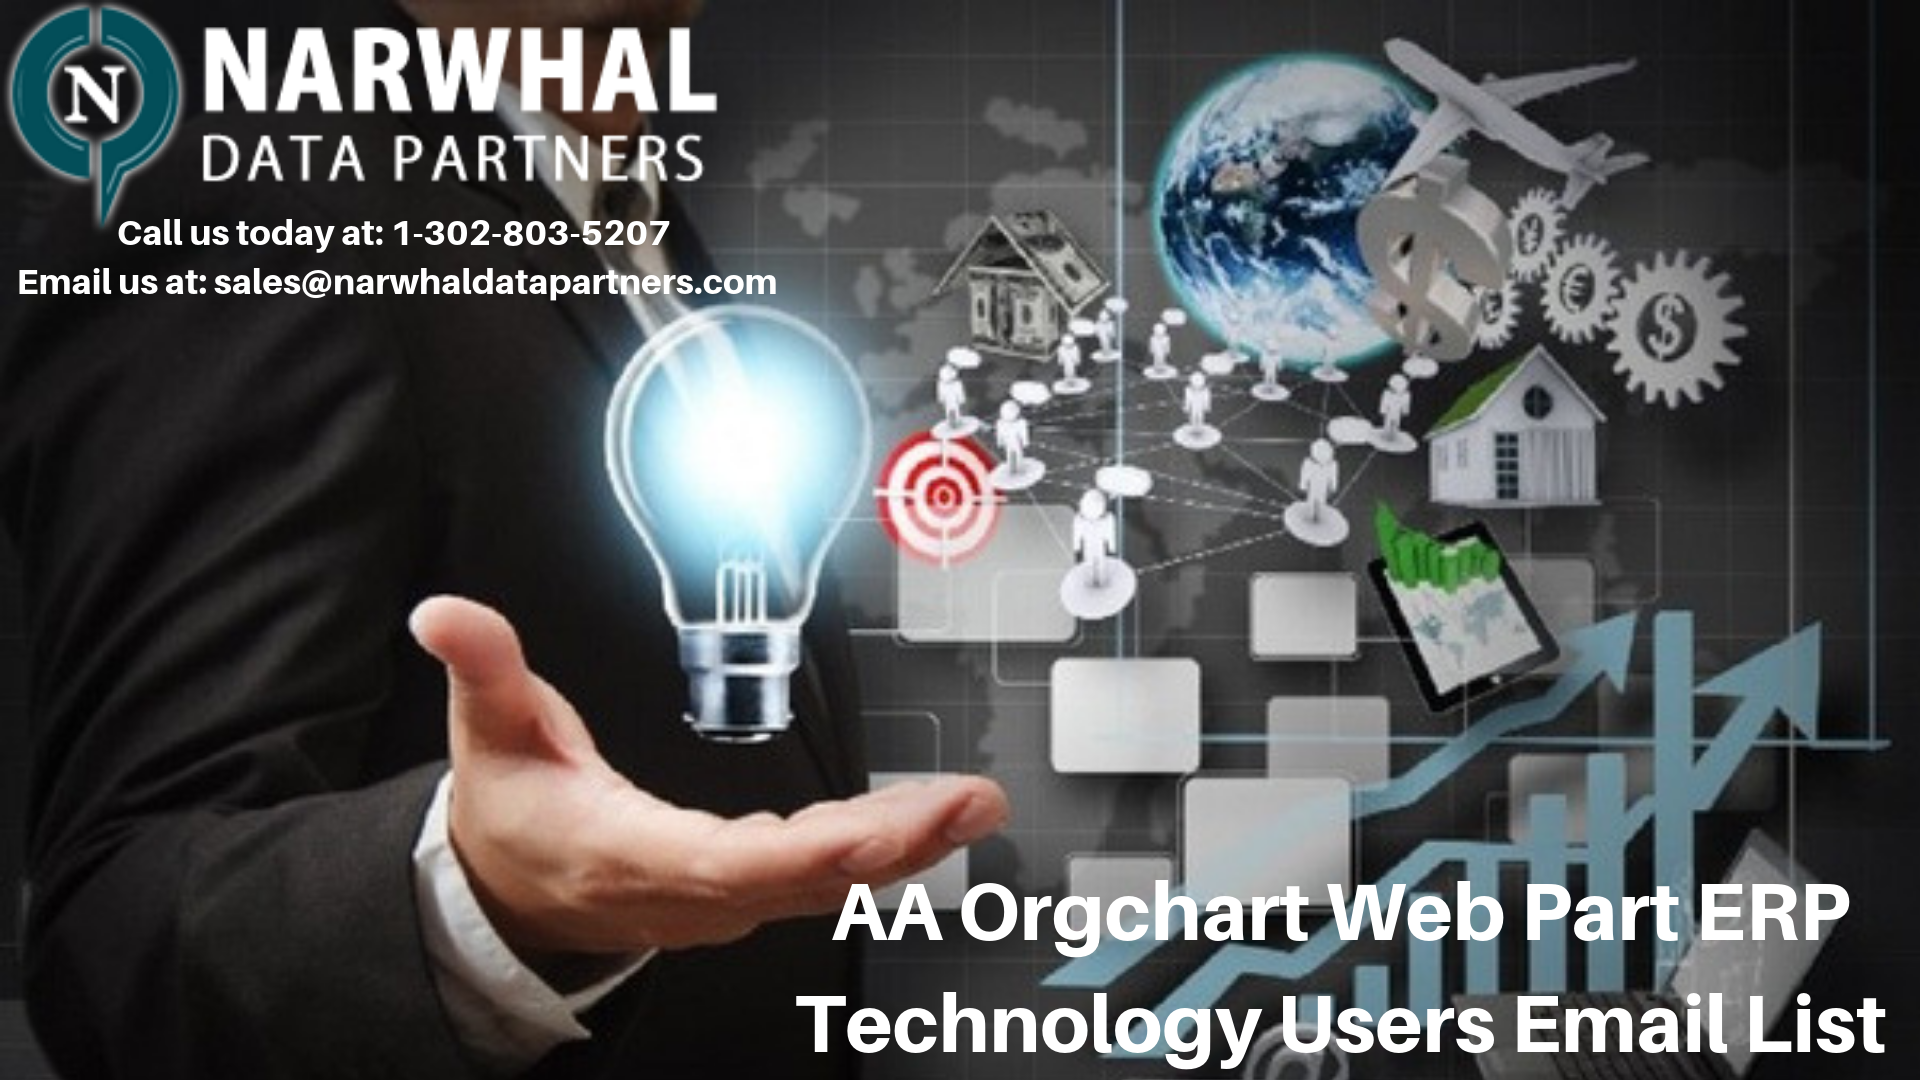 http://narwhaldatapartners.com/aa-orgchart-web-part-erp-technology-users-email-list.html